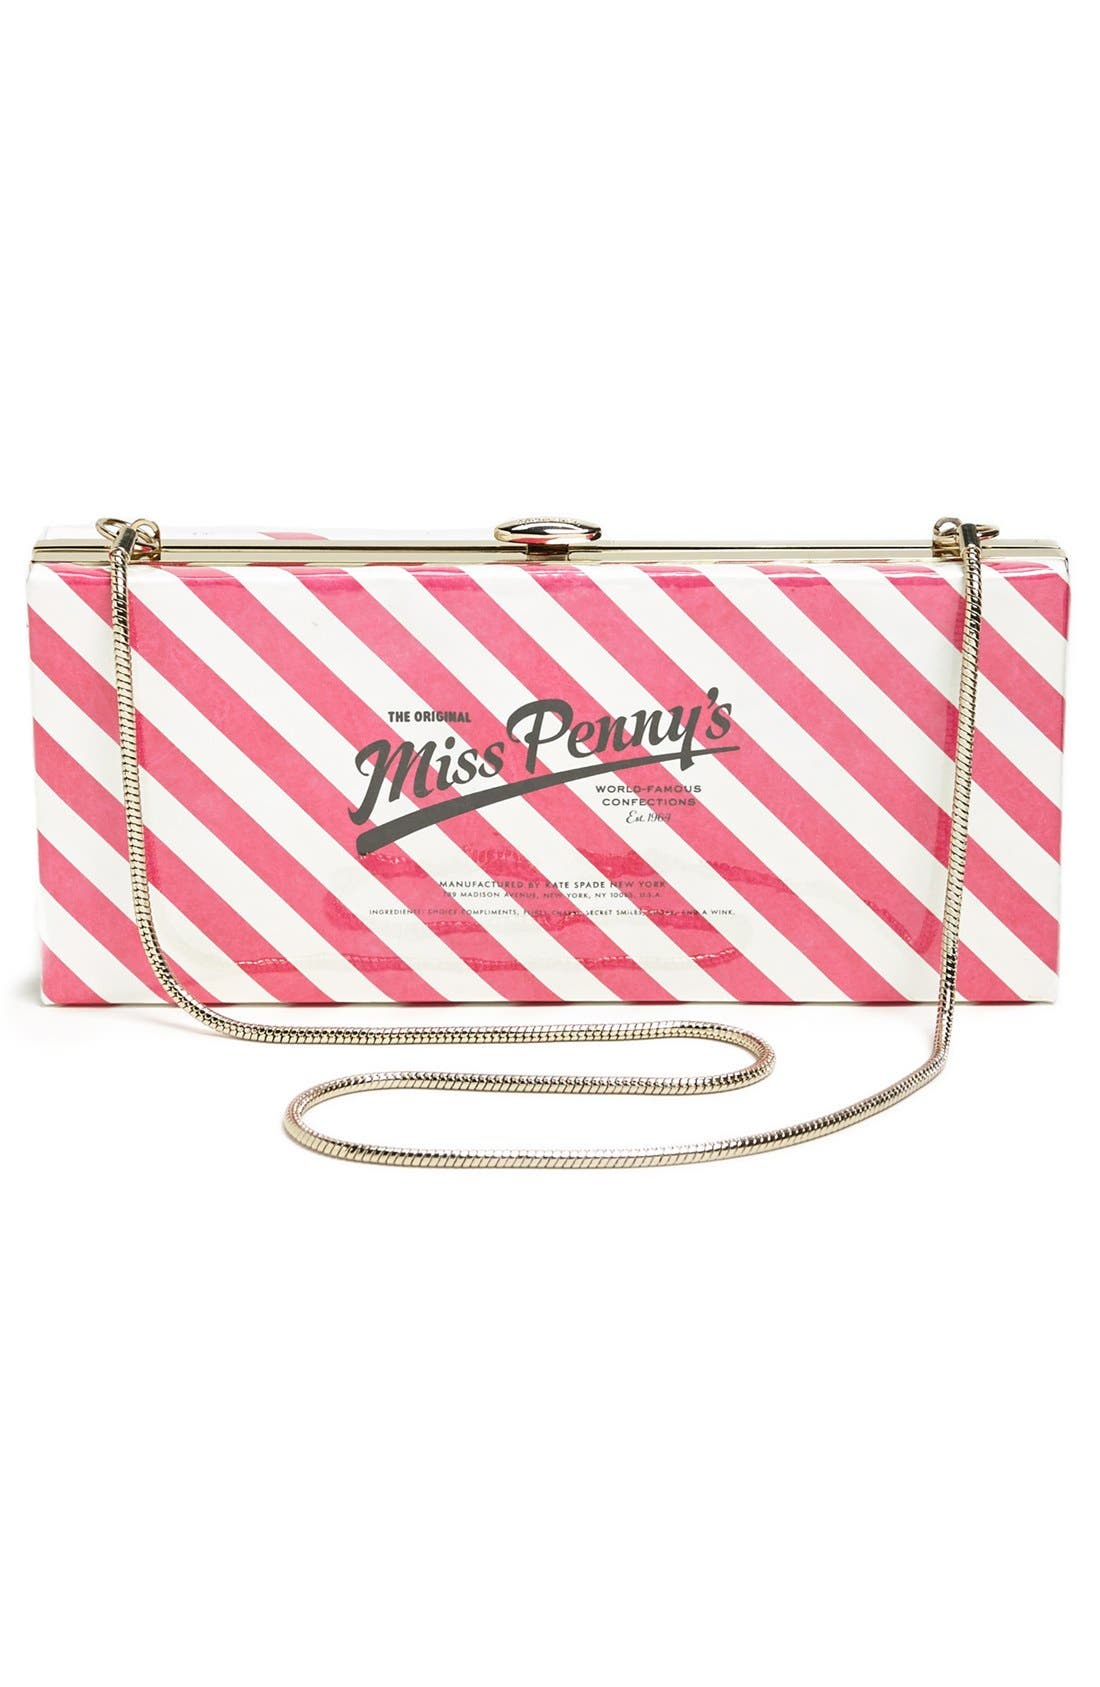 Alternate Image 4  - kate spade new york 'the original miss penny's ' box clutch